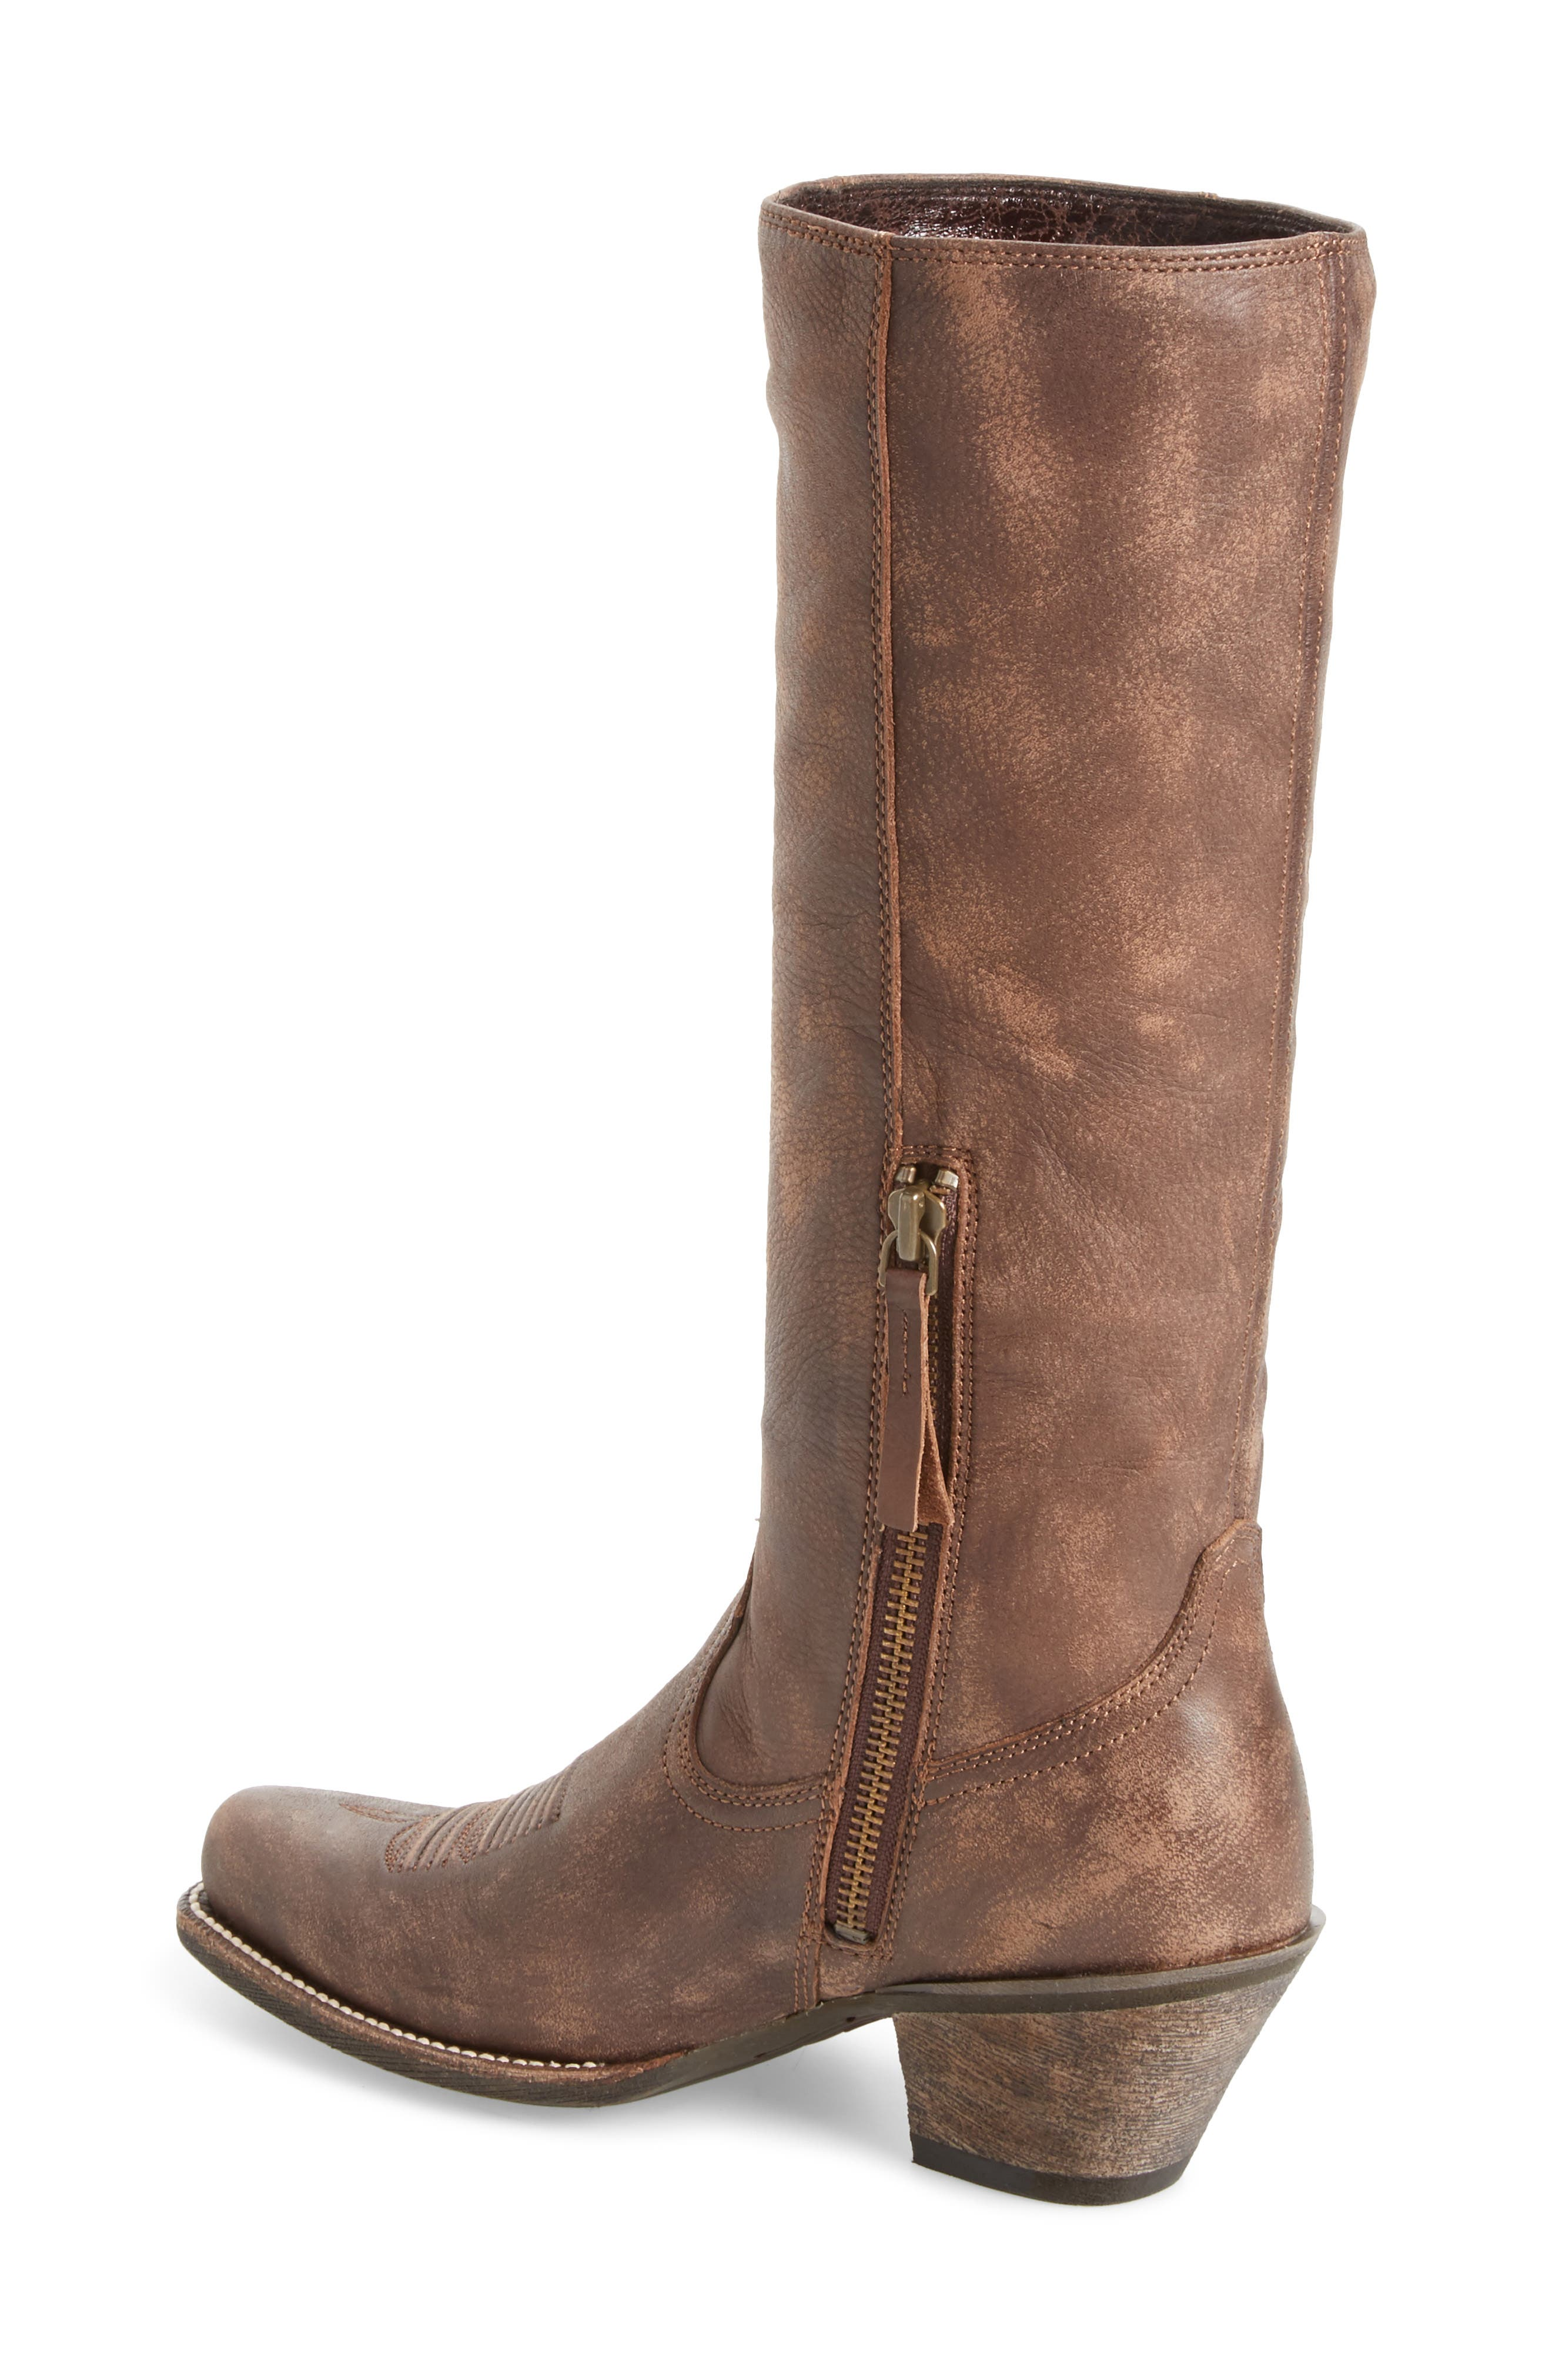 Leyton Fringe Western Boot,                             Alternate thumbnail 2, color,                             TACK ROOM CHOCOLATE LEATHER